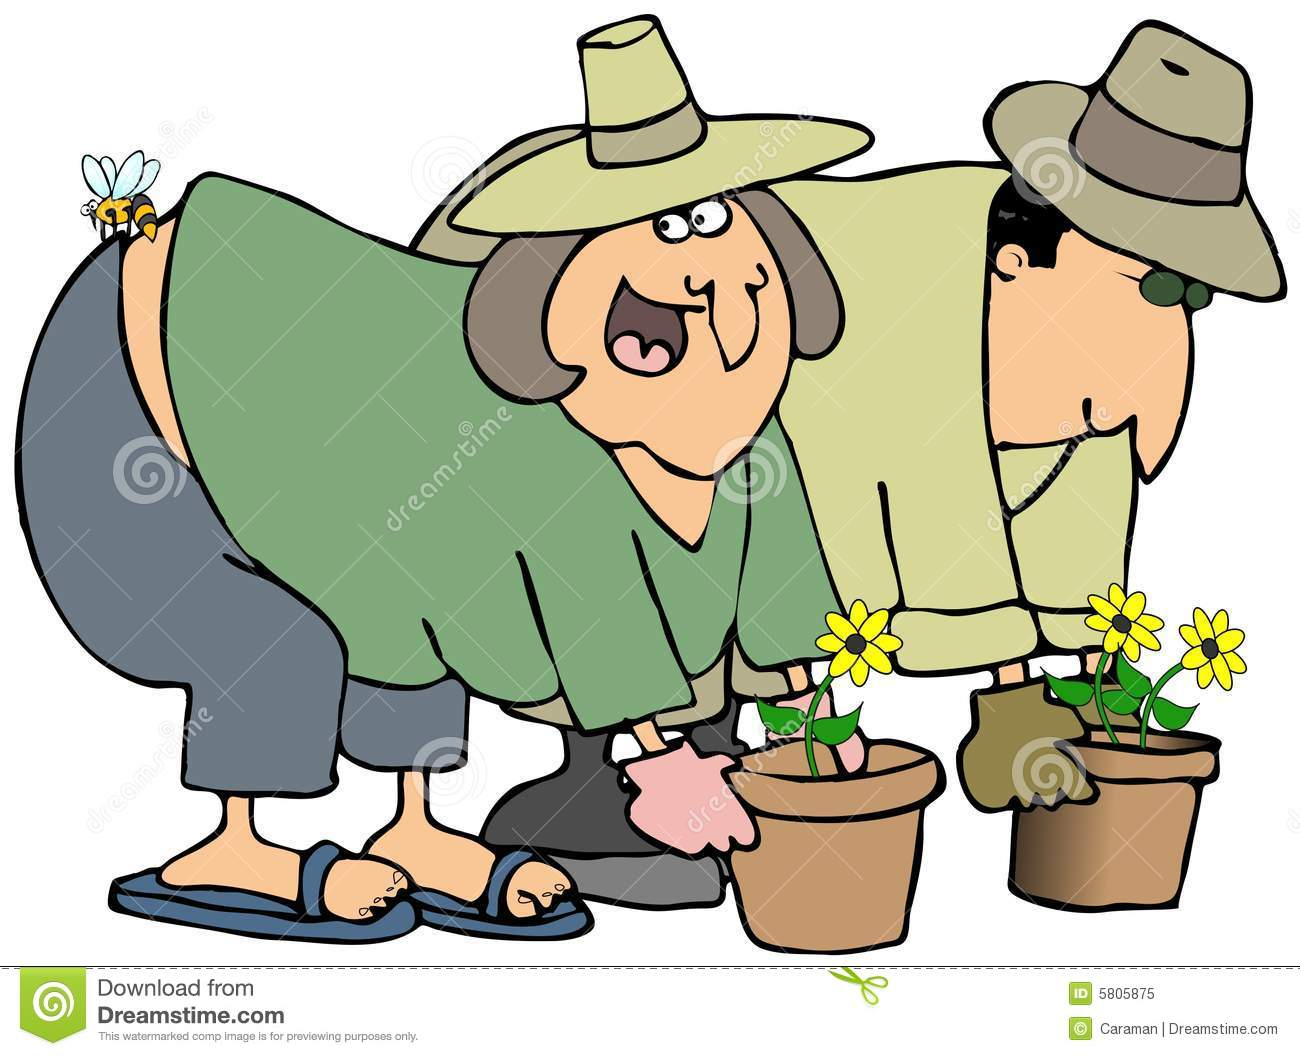 people gardening clip art - 612×455